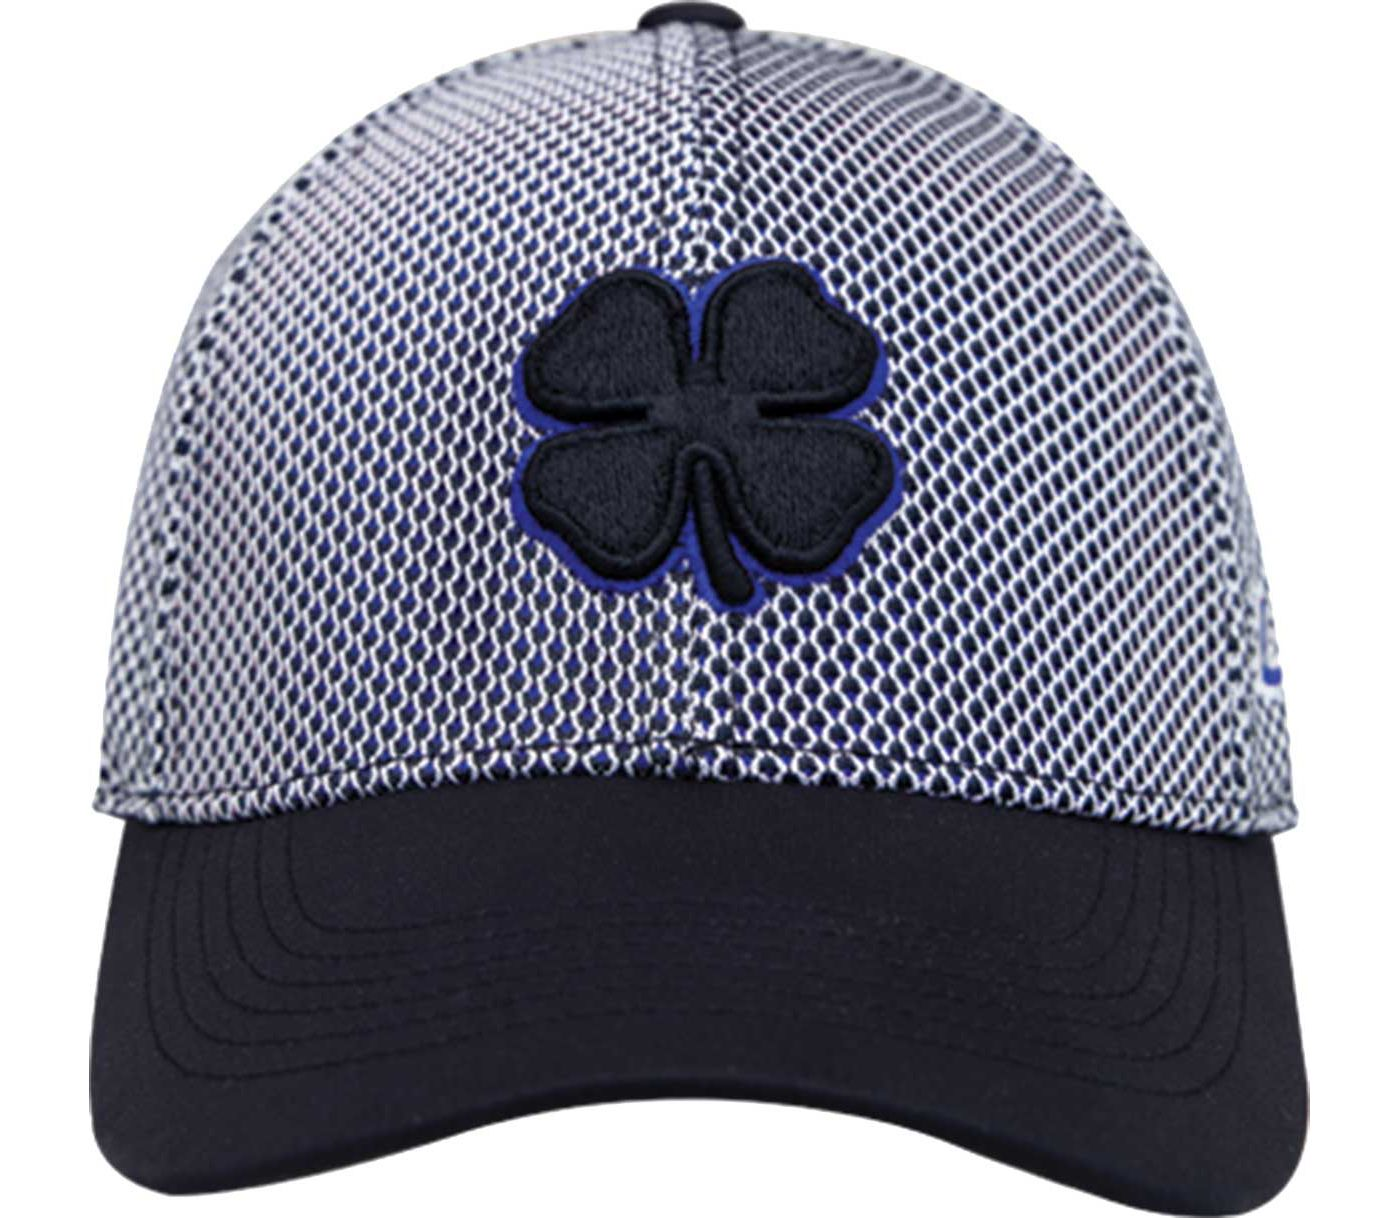 Black Clover Men's Weaved #2 Golf Hat